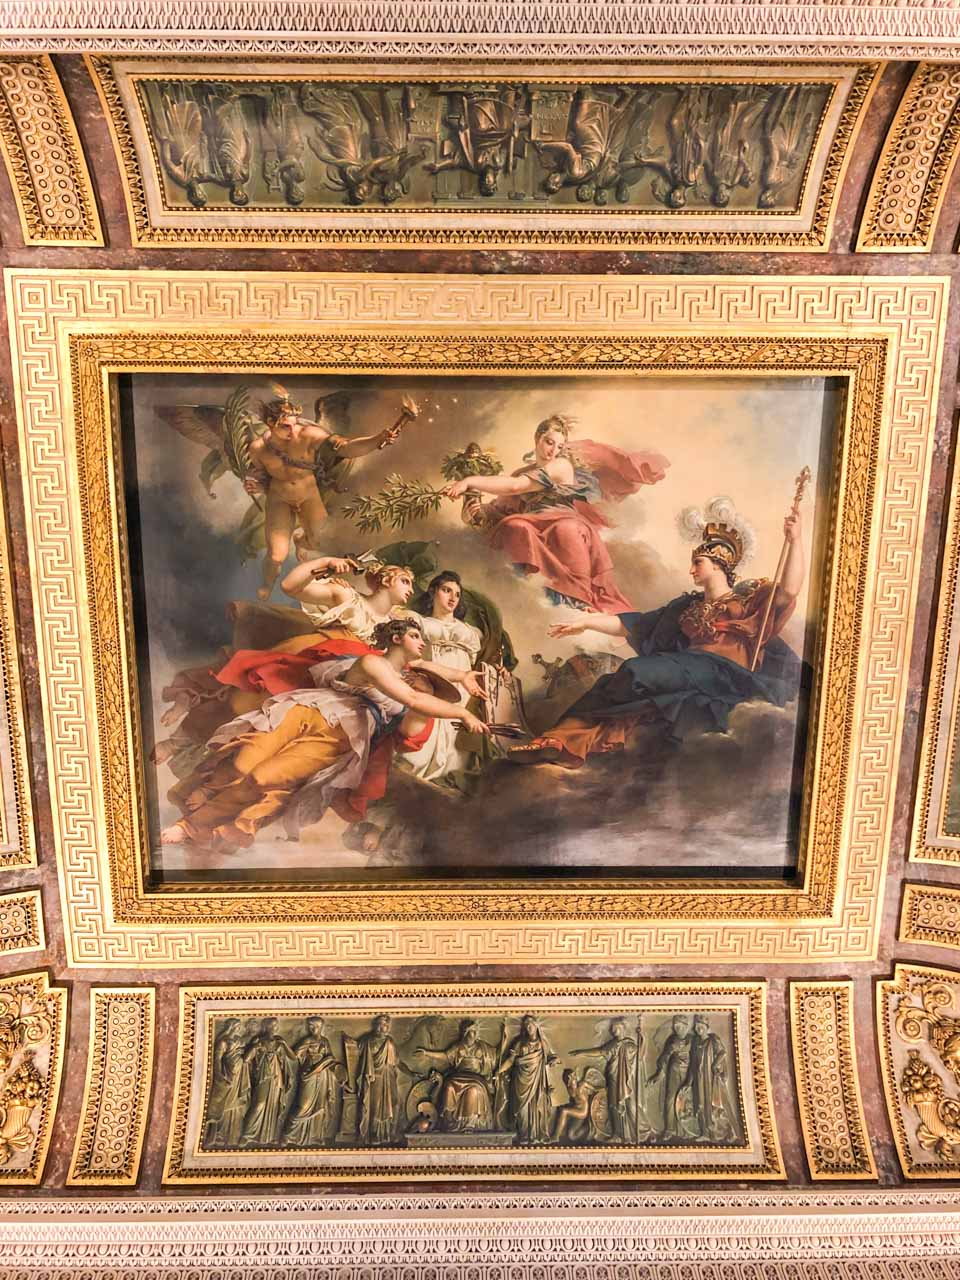 A fresco surrounded by gold edgings on the ceiling in the Louvre Museum in Paris, France